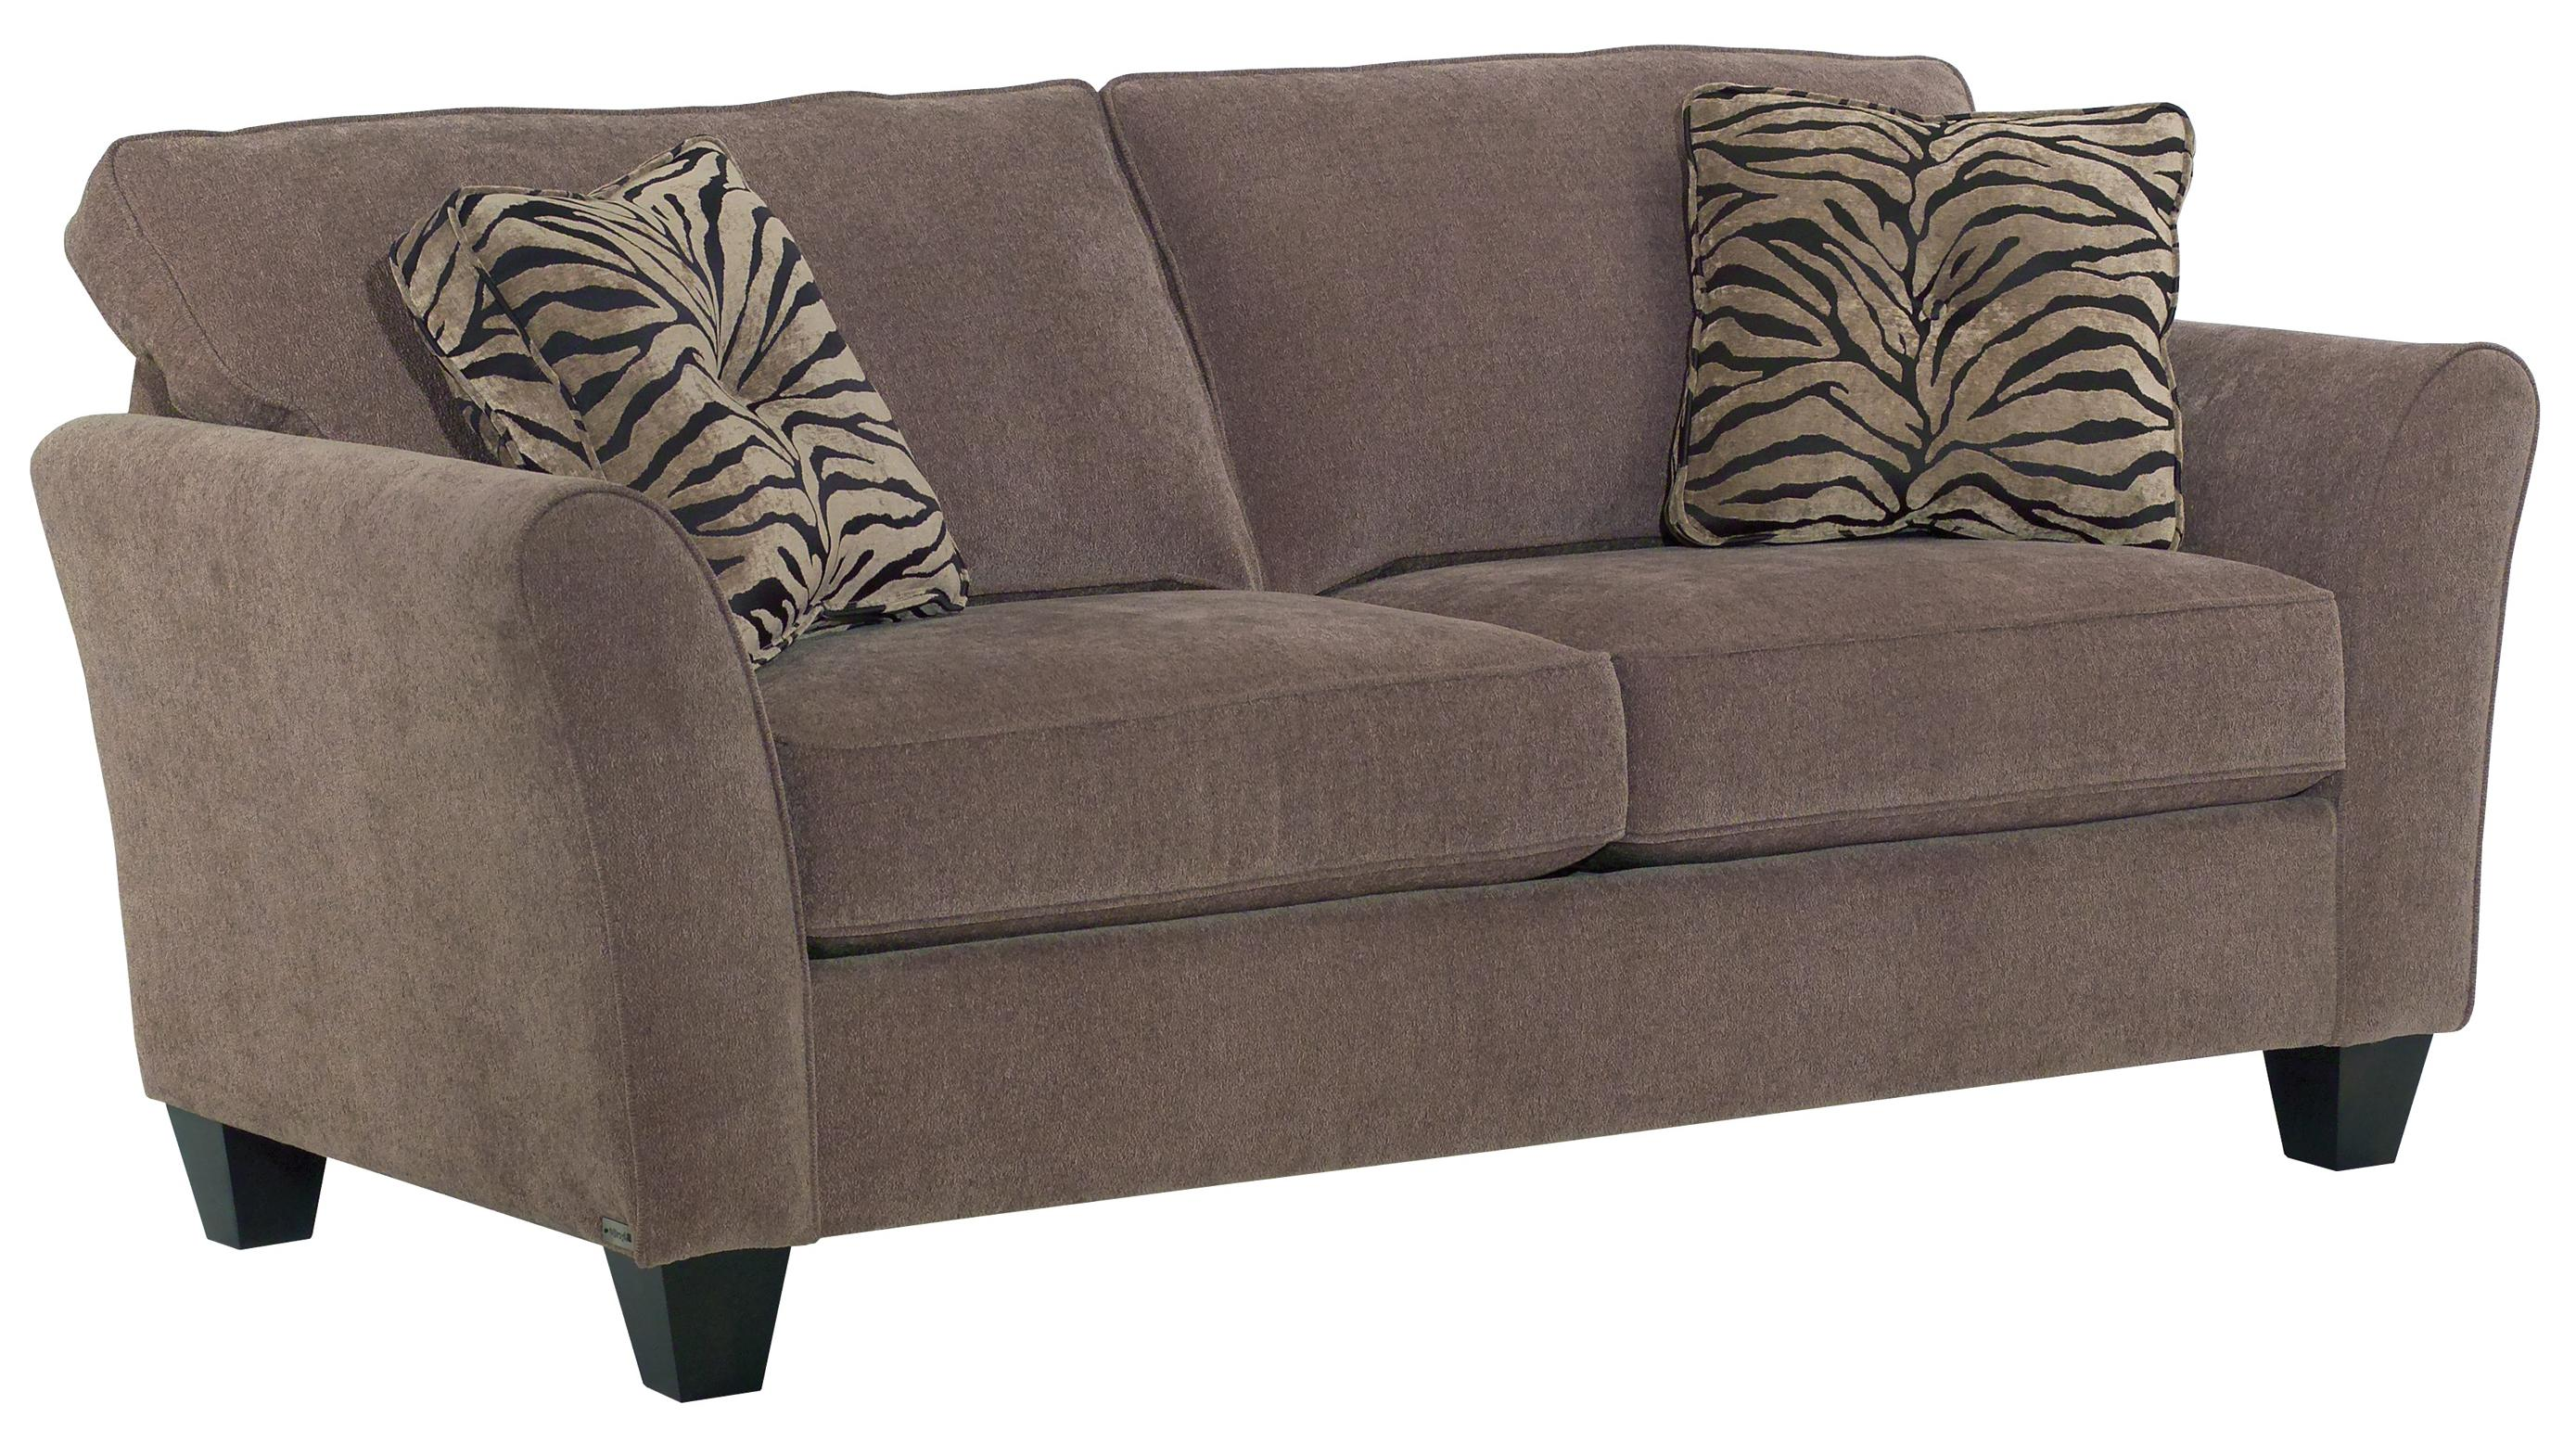 Broyhill Furniture Maddie Two Seat Apartment Sofa With